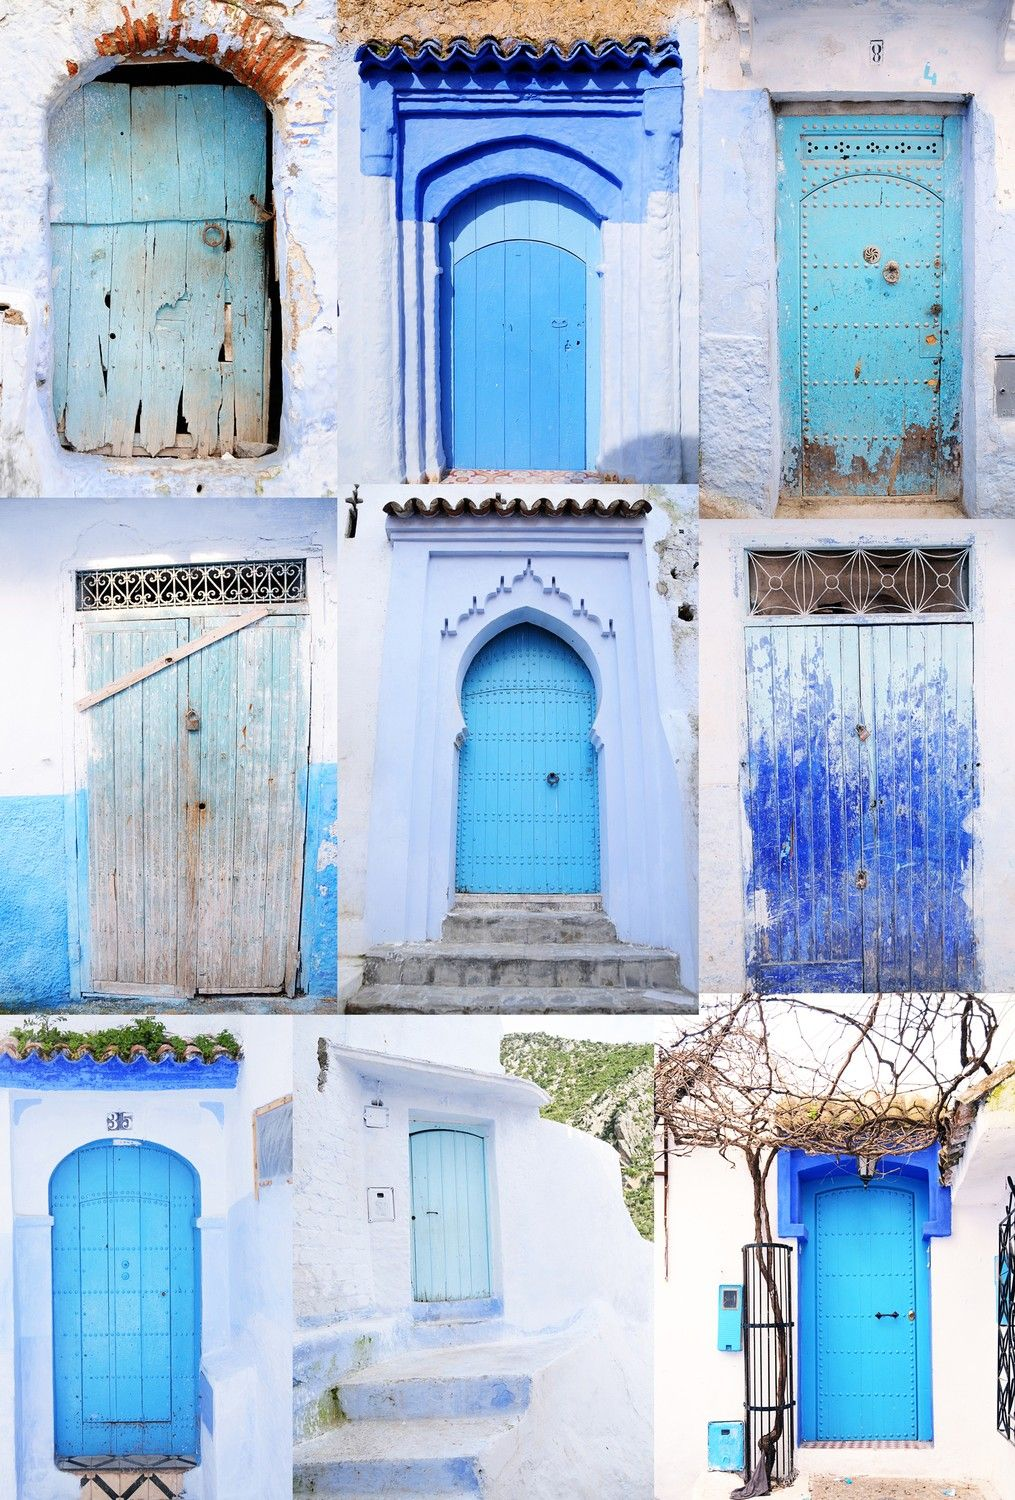 Moroccan Blue Door Collage Travel Photography HVLAUREN E - Old town morocco entirely blue